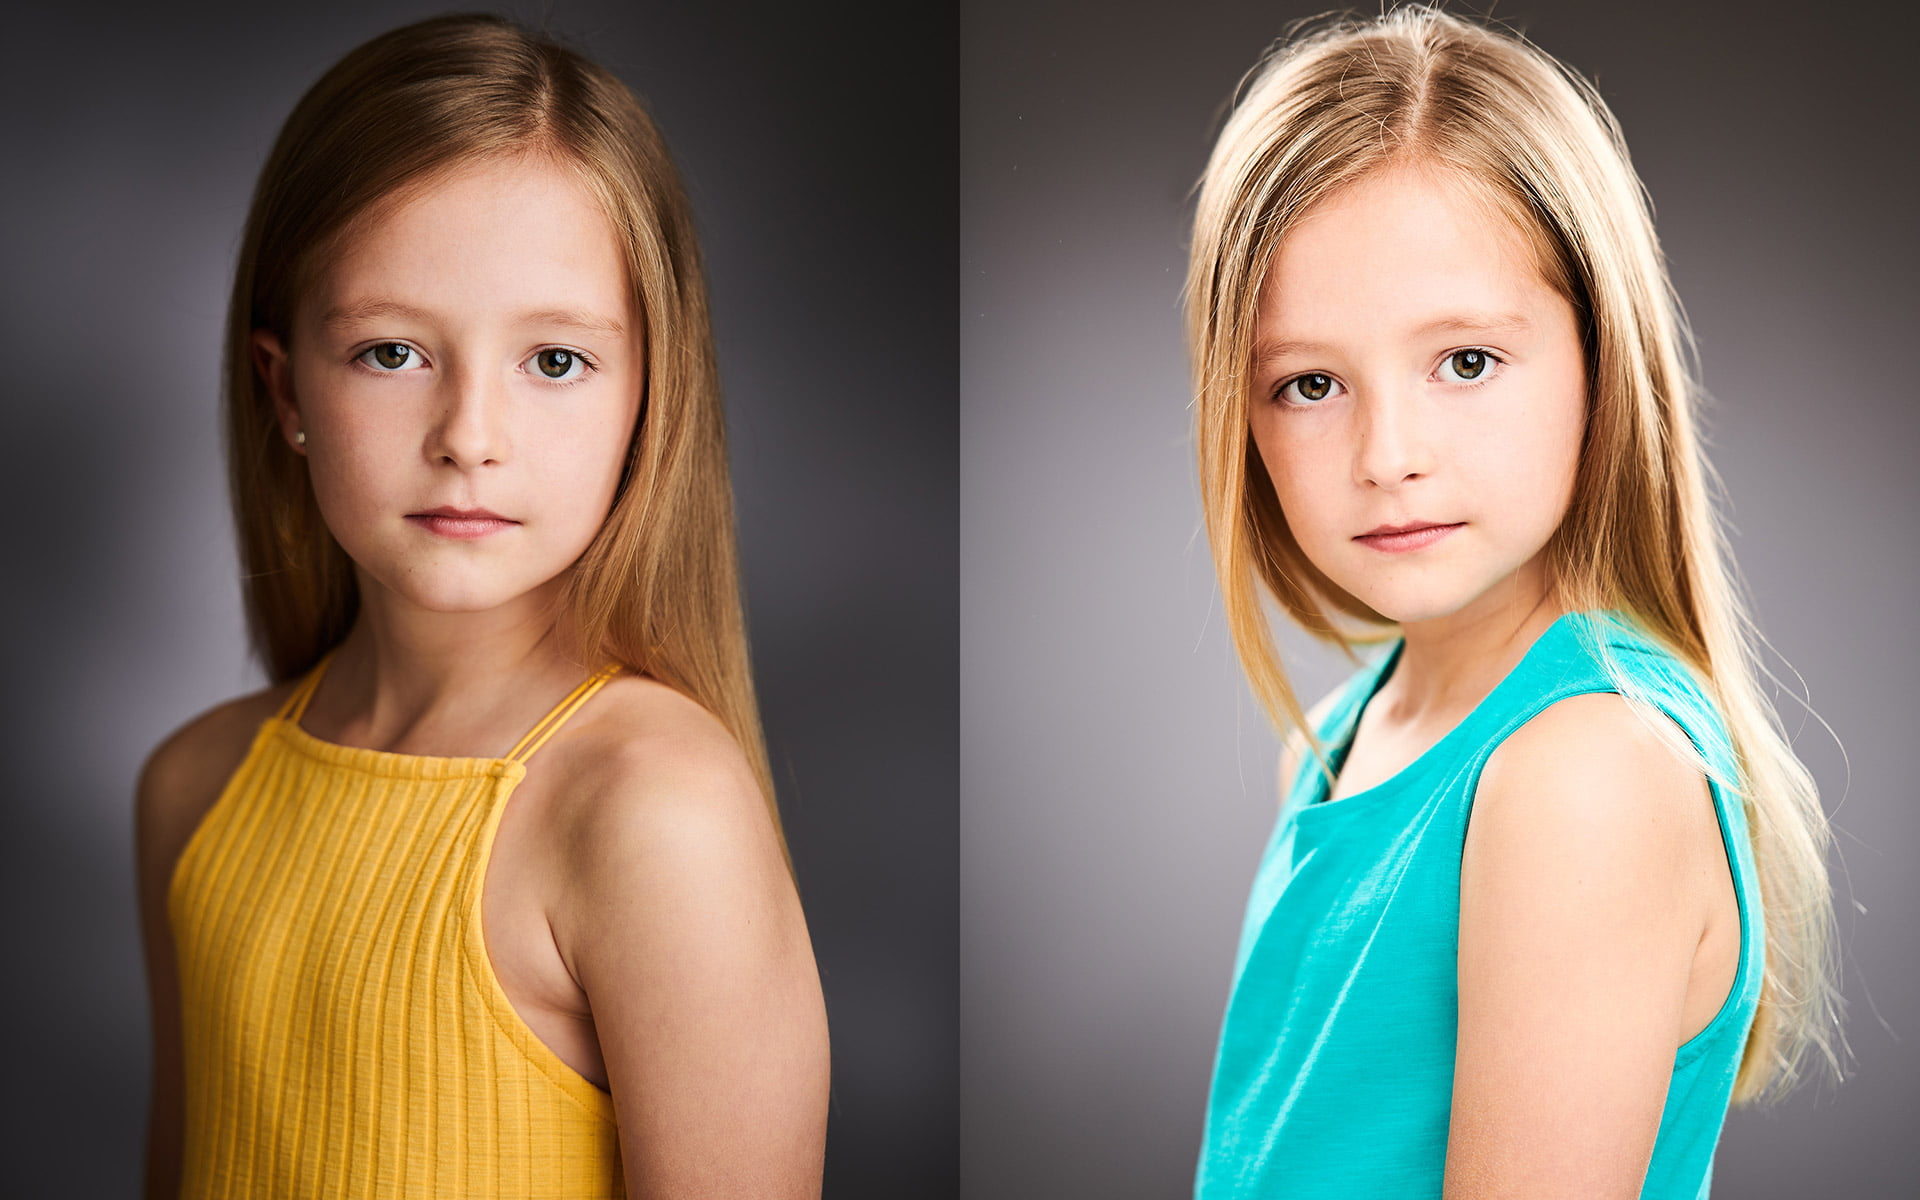 childrens-headshots_photographers-brighton-london